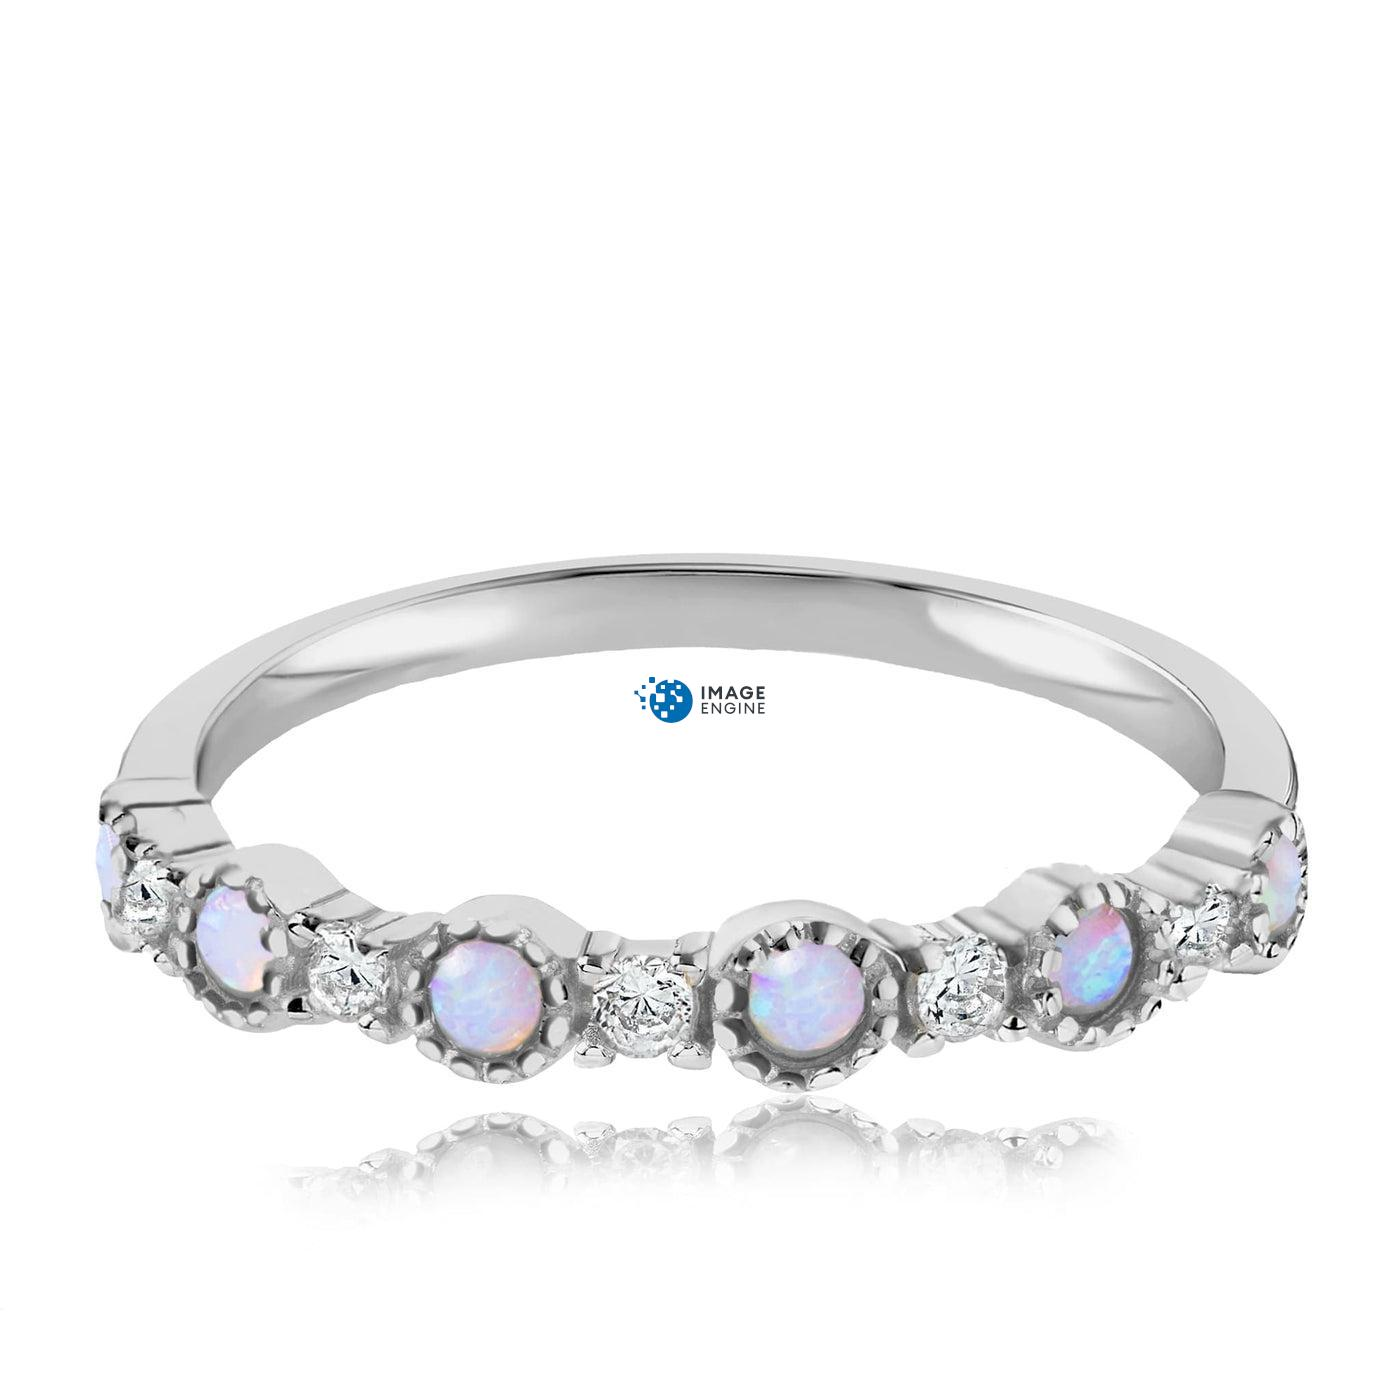 Debra Dots Opal Ring - Front View Facing Down - 925 Sterling Silver